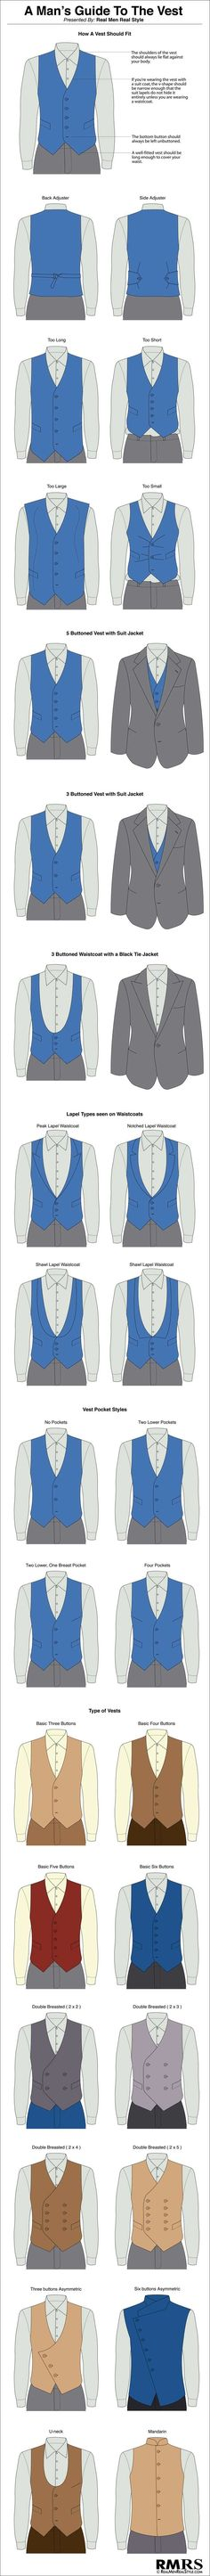 A Mans Guide To The Vest | Repined by https://www.movingforlove.com